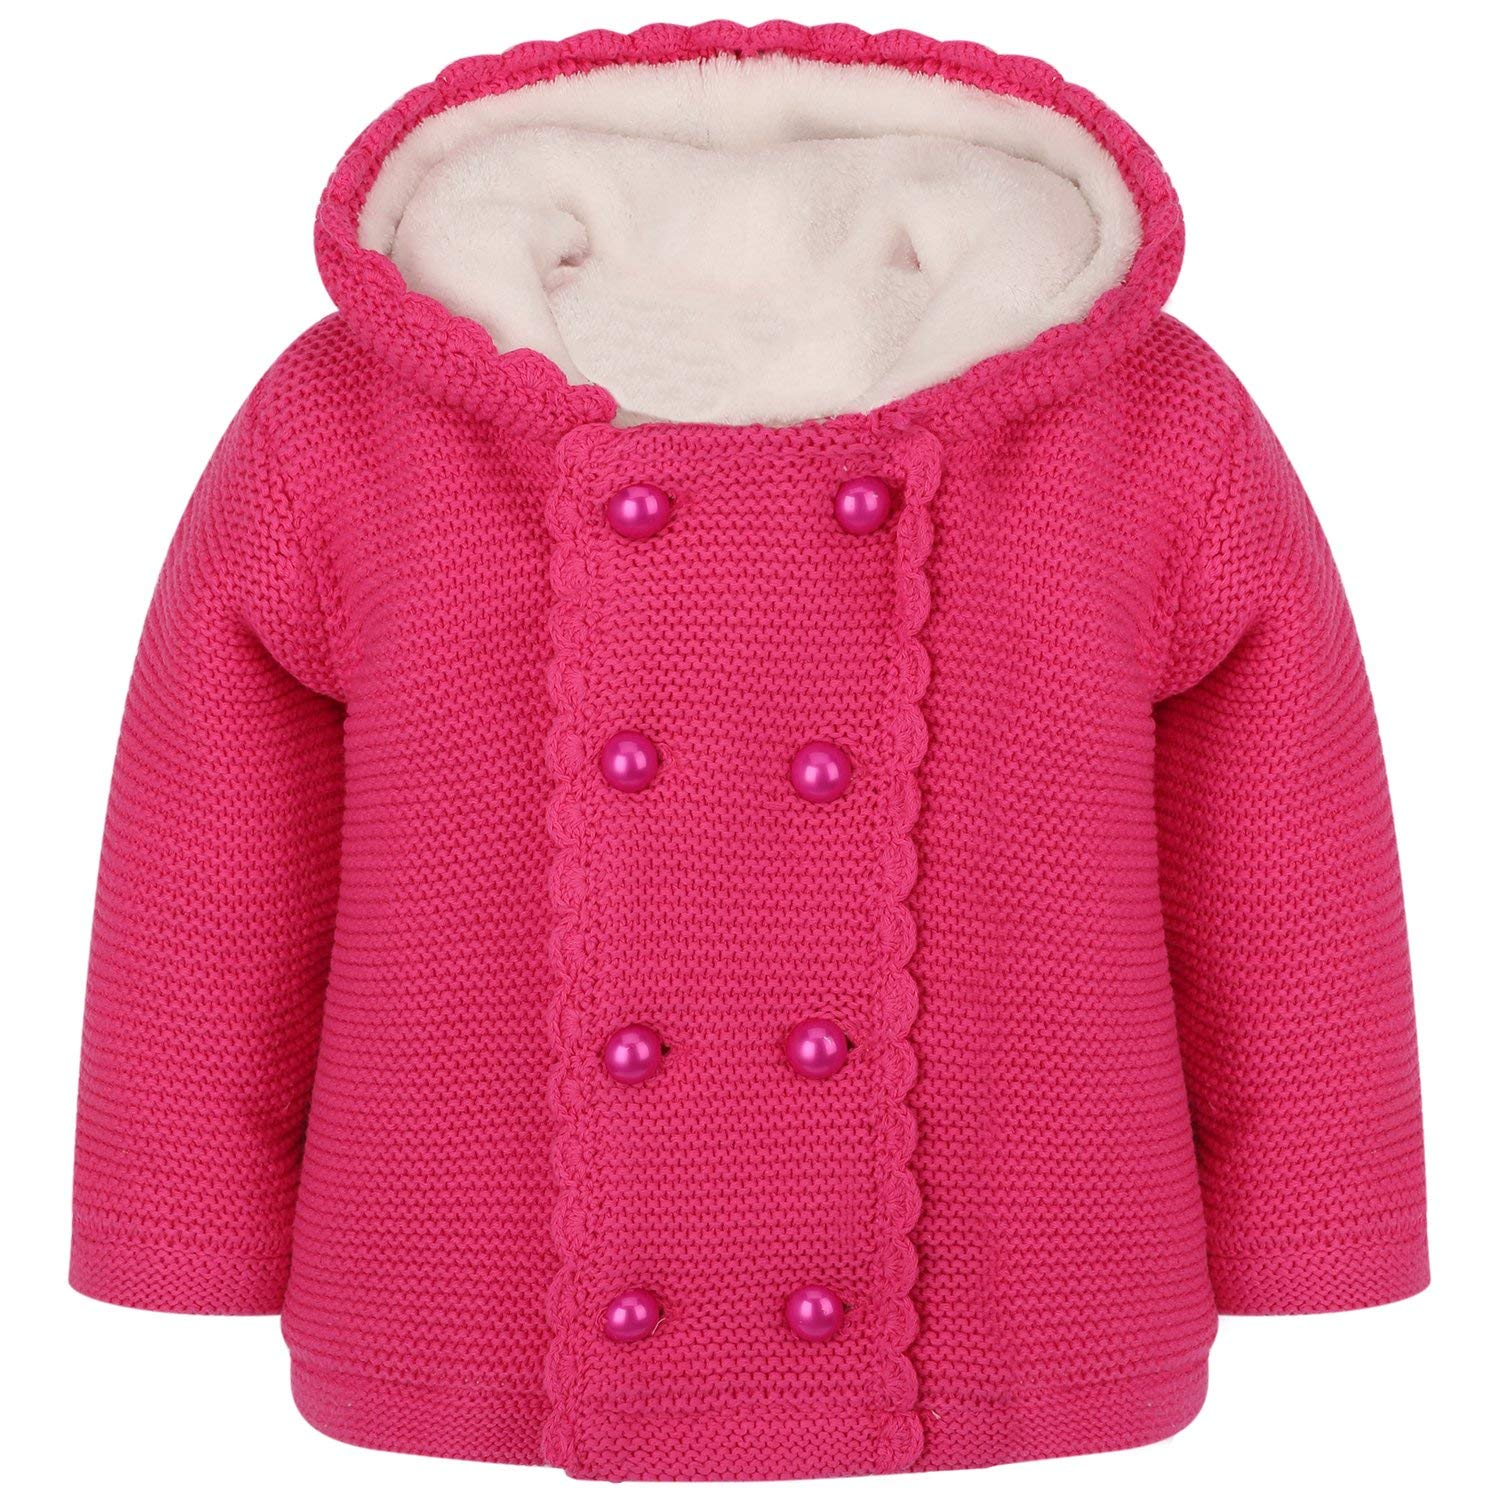 Stesti Trench Coats for Kids Girls Pink Jackets Winter Coat for Baby Girl